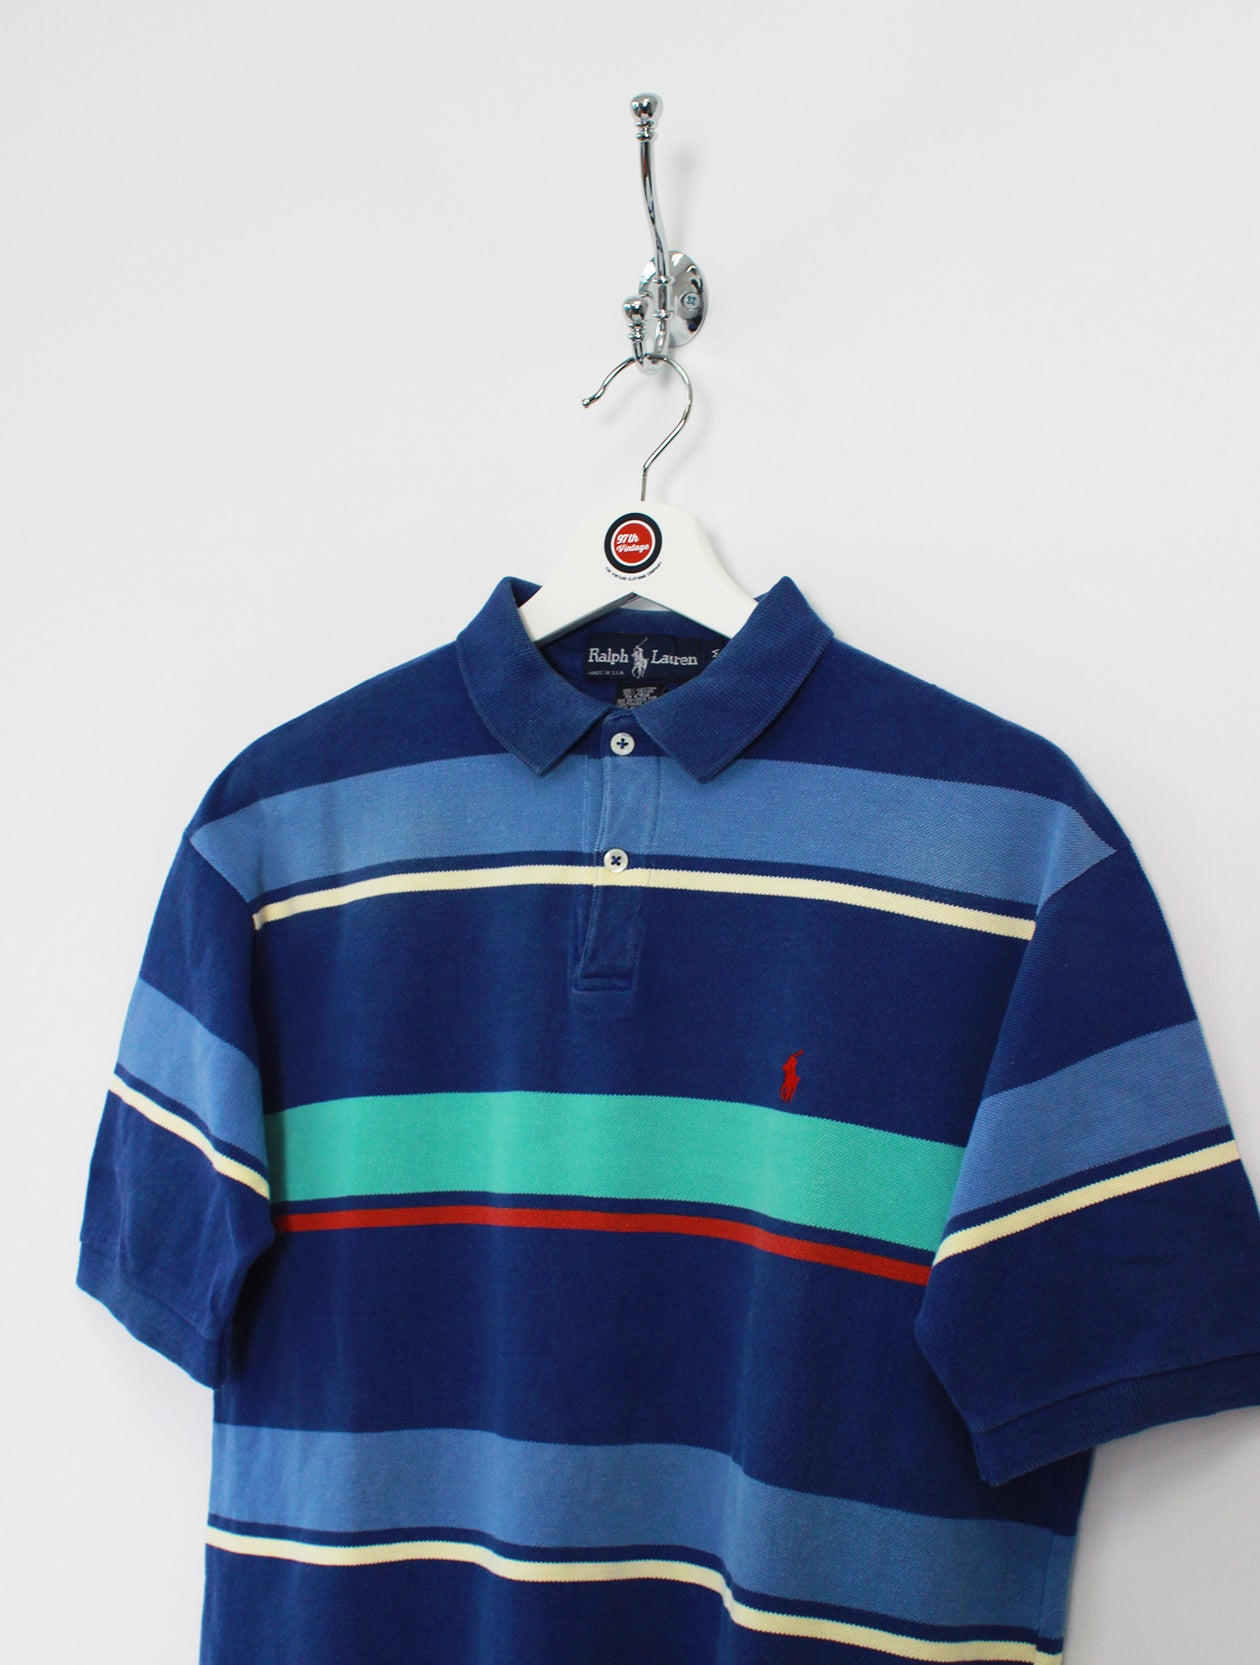 97th Shirtm– Ralph Polo Lauren Vintage pqSUVGMz